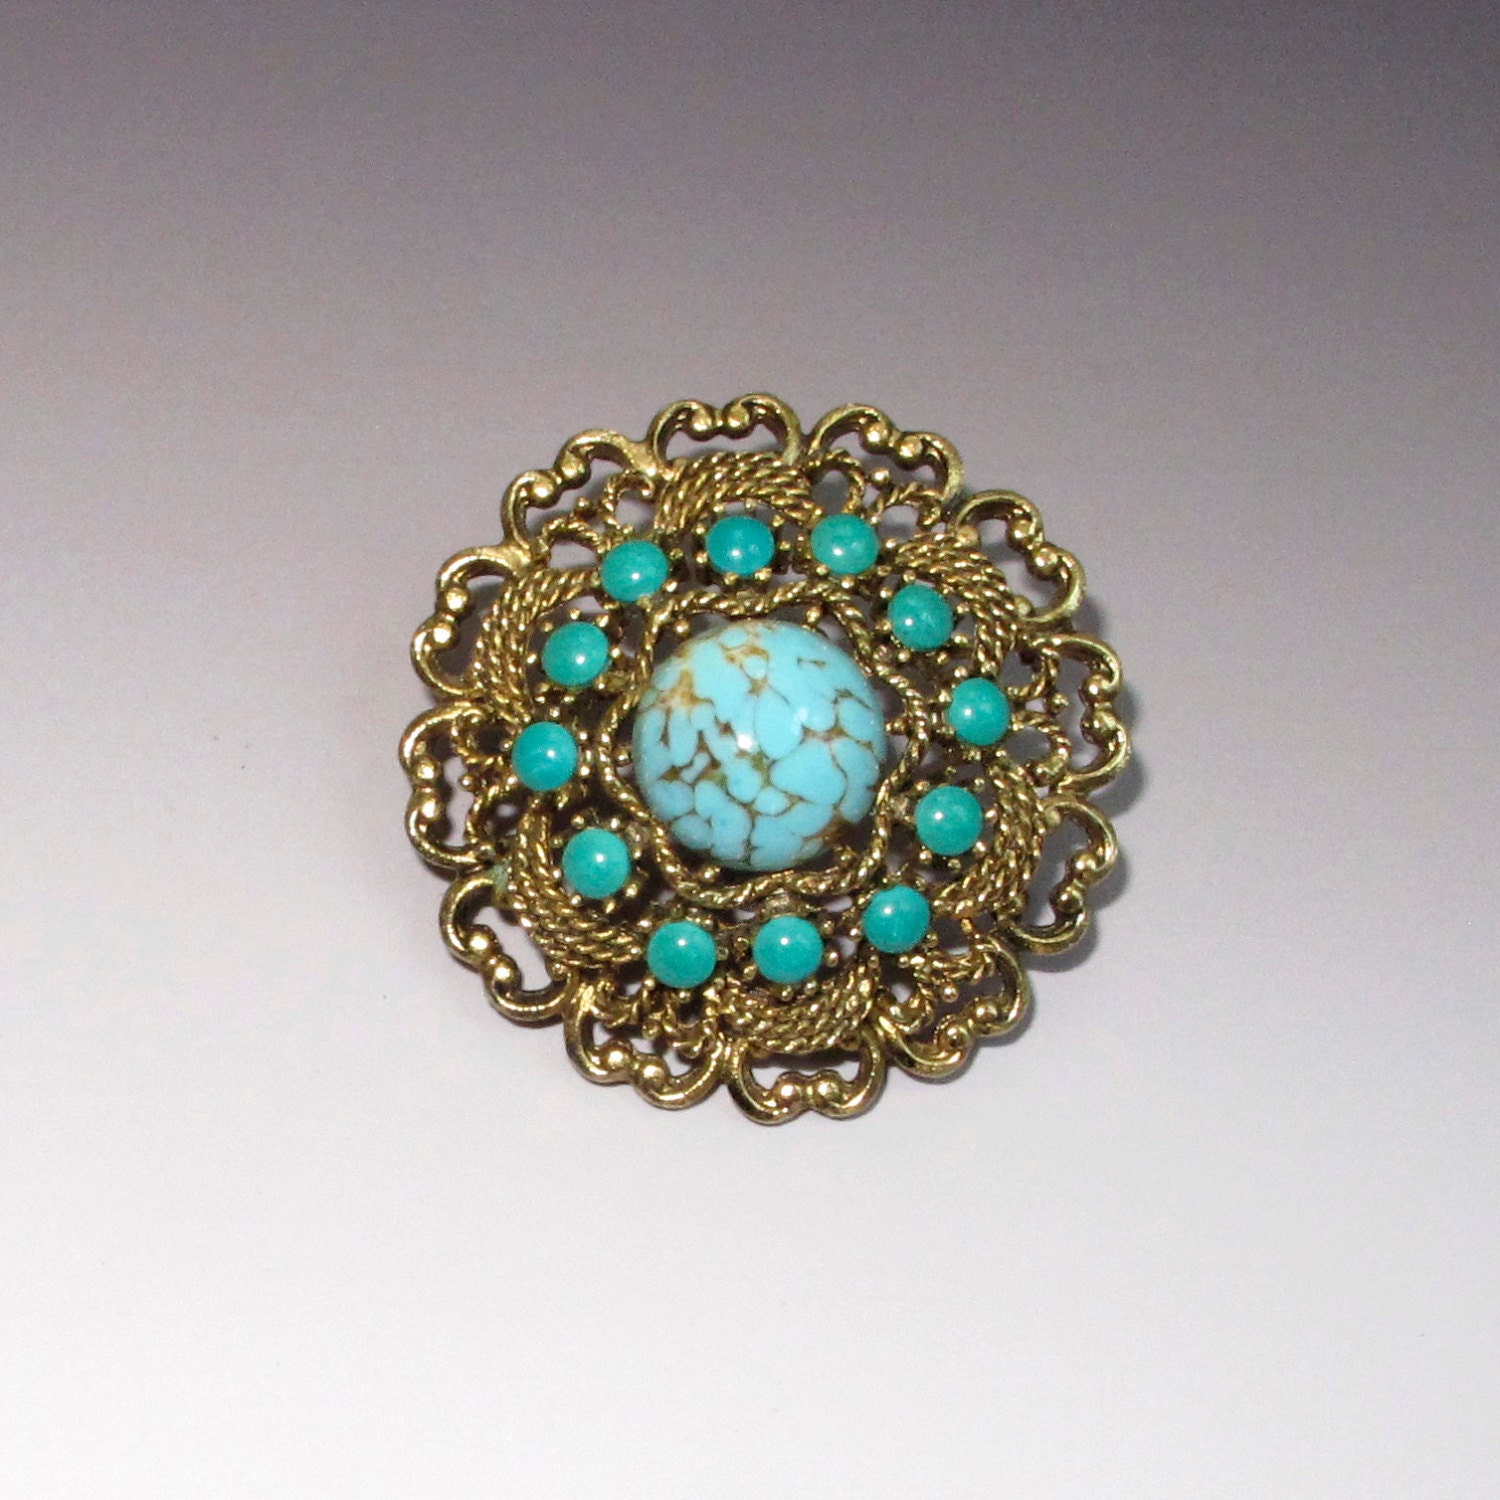 vintage emmons faux turquoise and antique goldtone brooch